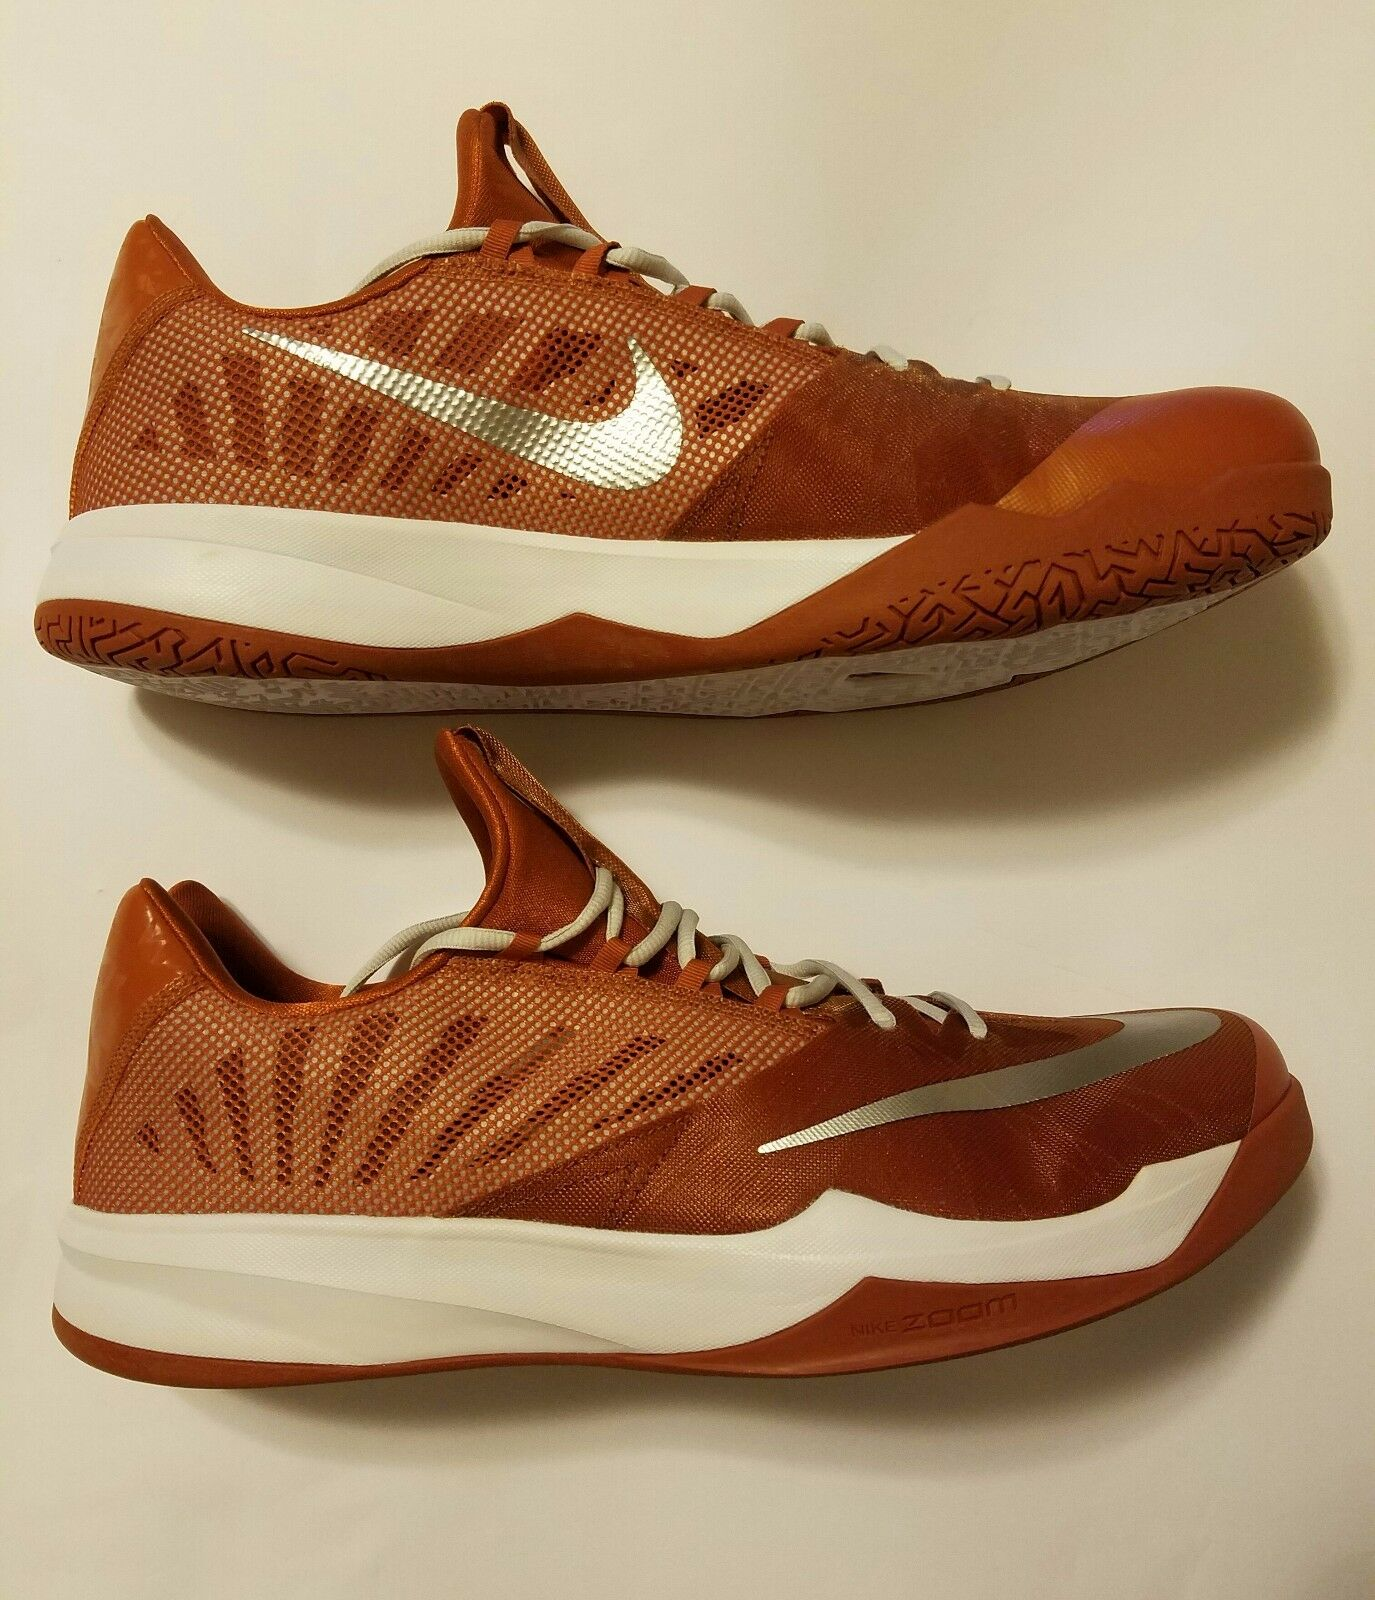 Nike Zoom Run The One Texas Longhorns PE Burnt Orange/White 685779-801 Price reduction Great discount